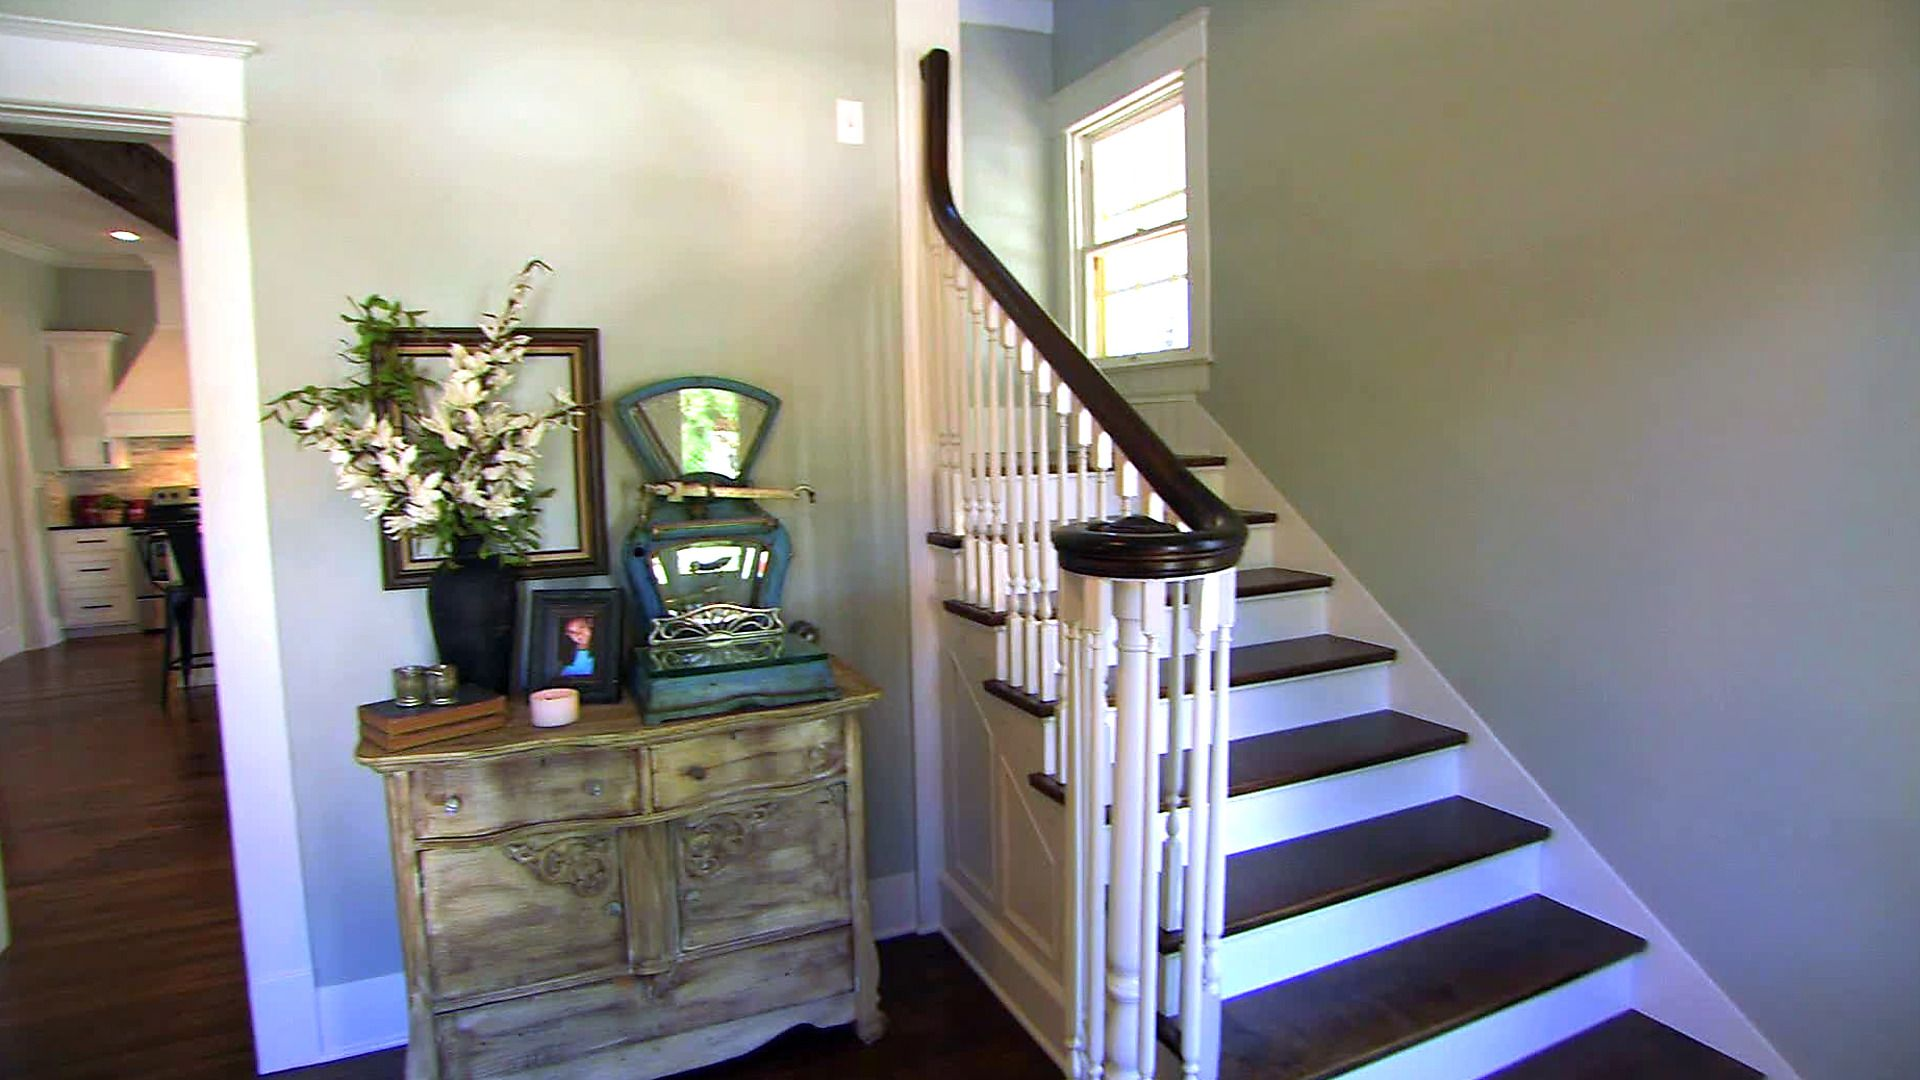 HGTV's Fixer Upper With Chip and Joanna Gaines | Show ...